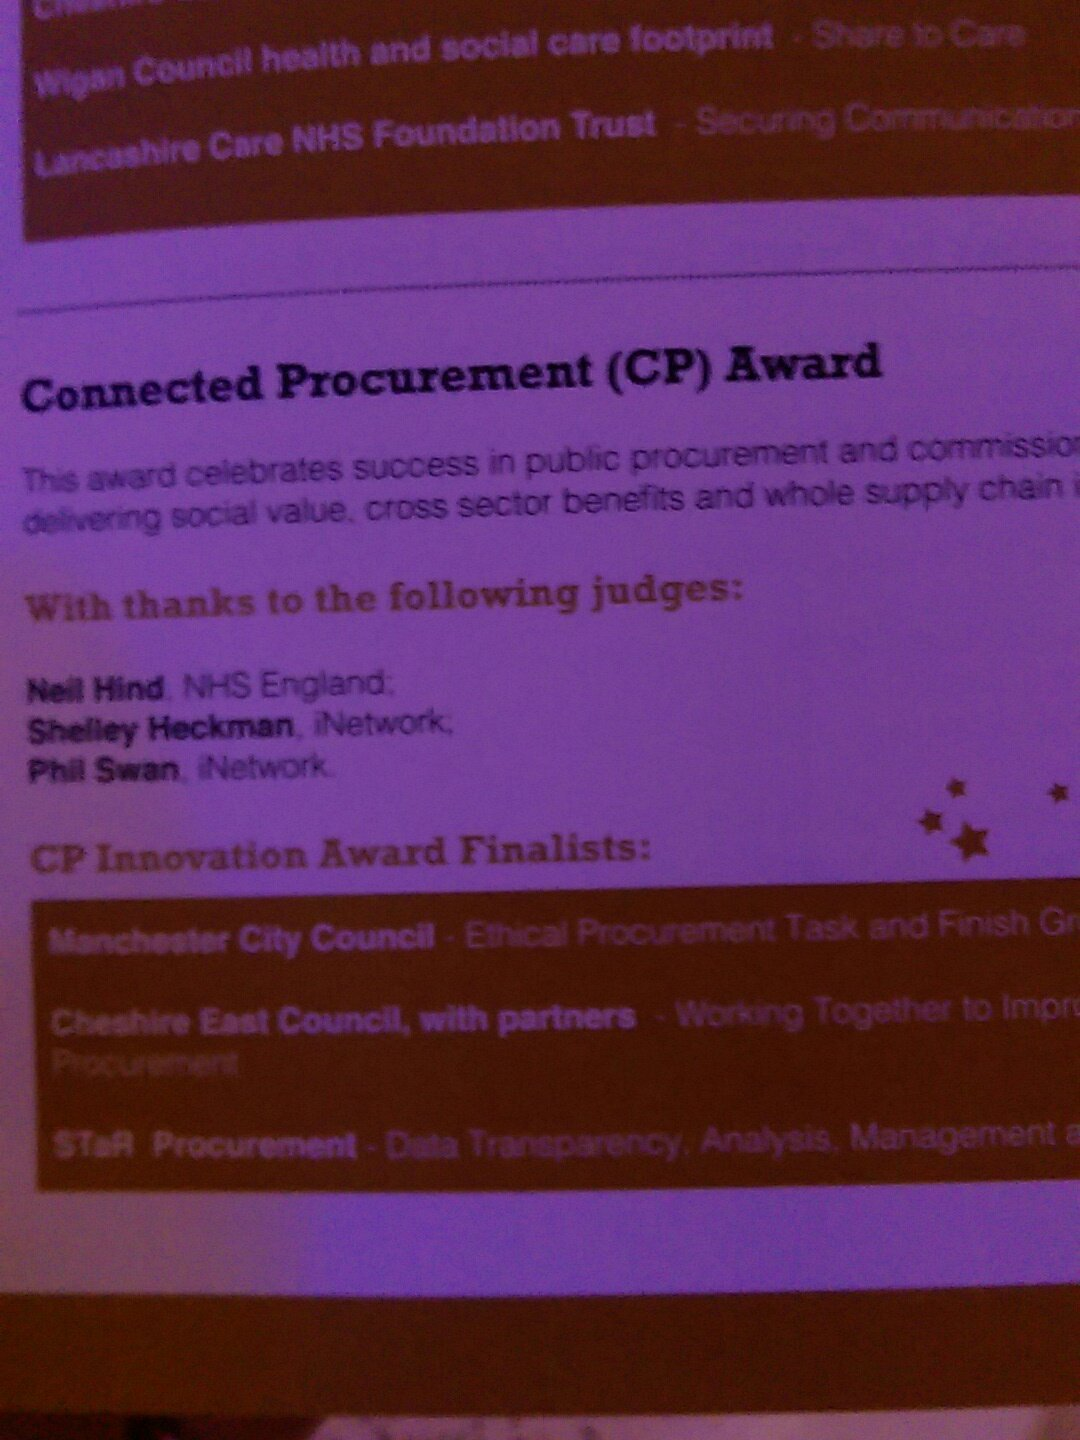 "STAR are very honoured to be finalists in a very strong ""connected procurement"" category #inetworkawards @EYnews @theinetwork https://t.co/6EOEvnRPdv"